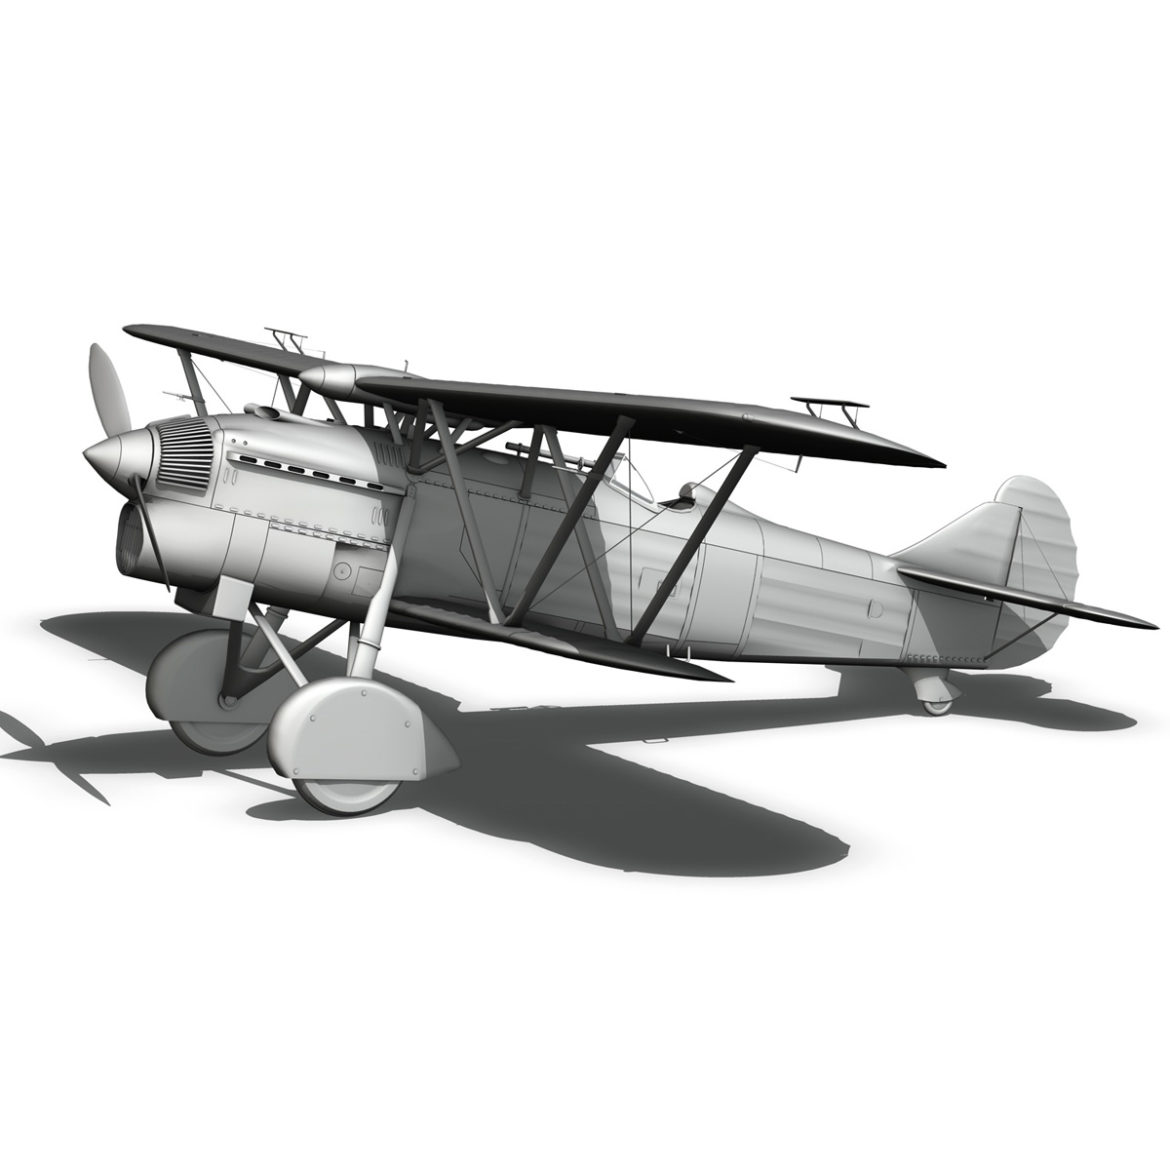 fiat cr.32 – italy airforce – 410 squadriglia 3d model fbx c4d lwo obj 307560